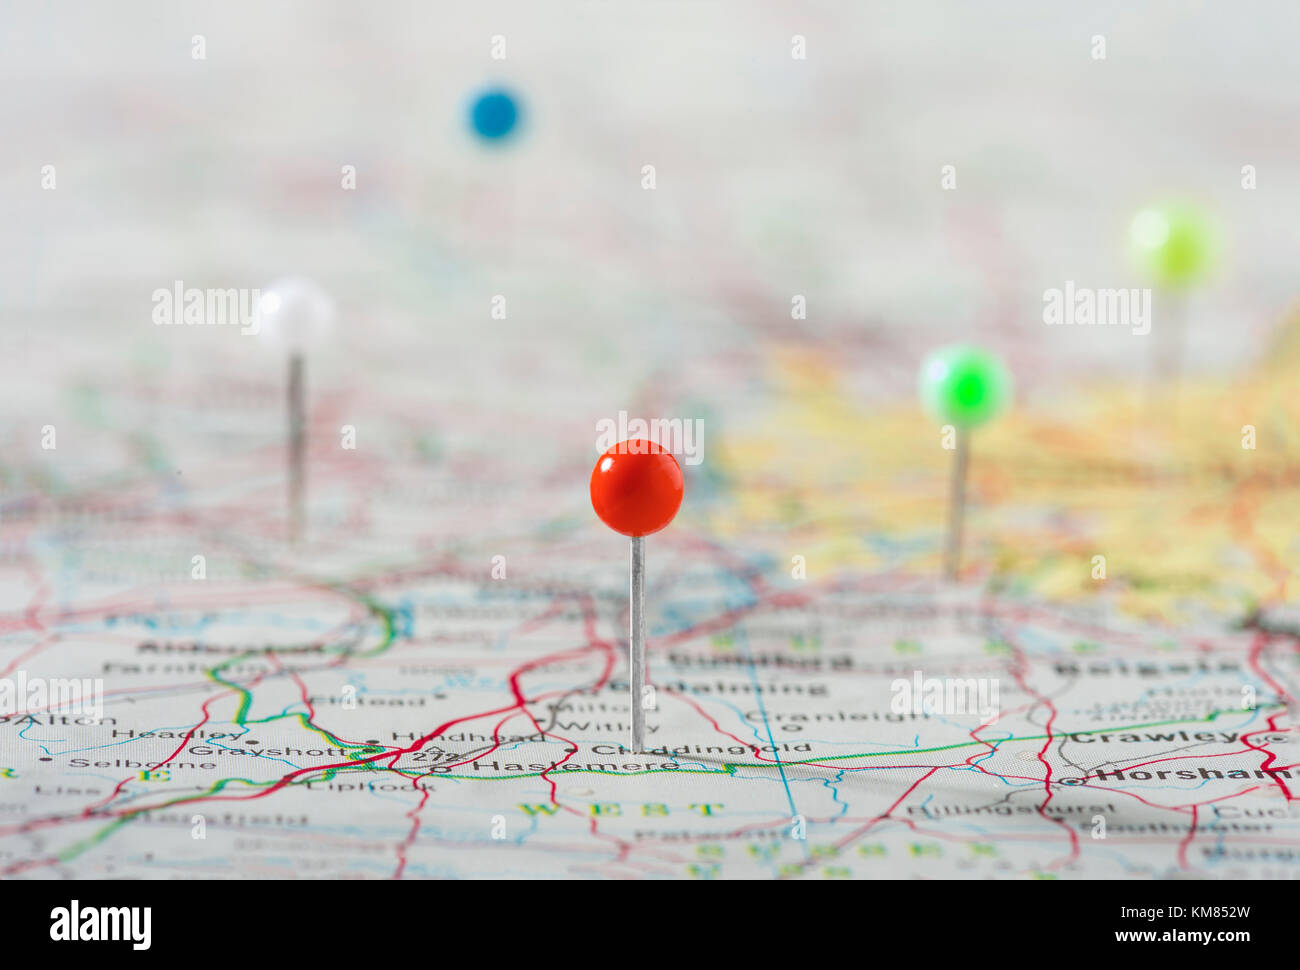 Pins On Map Marking Destinations - Stock Image